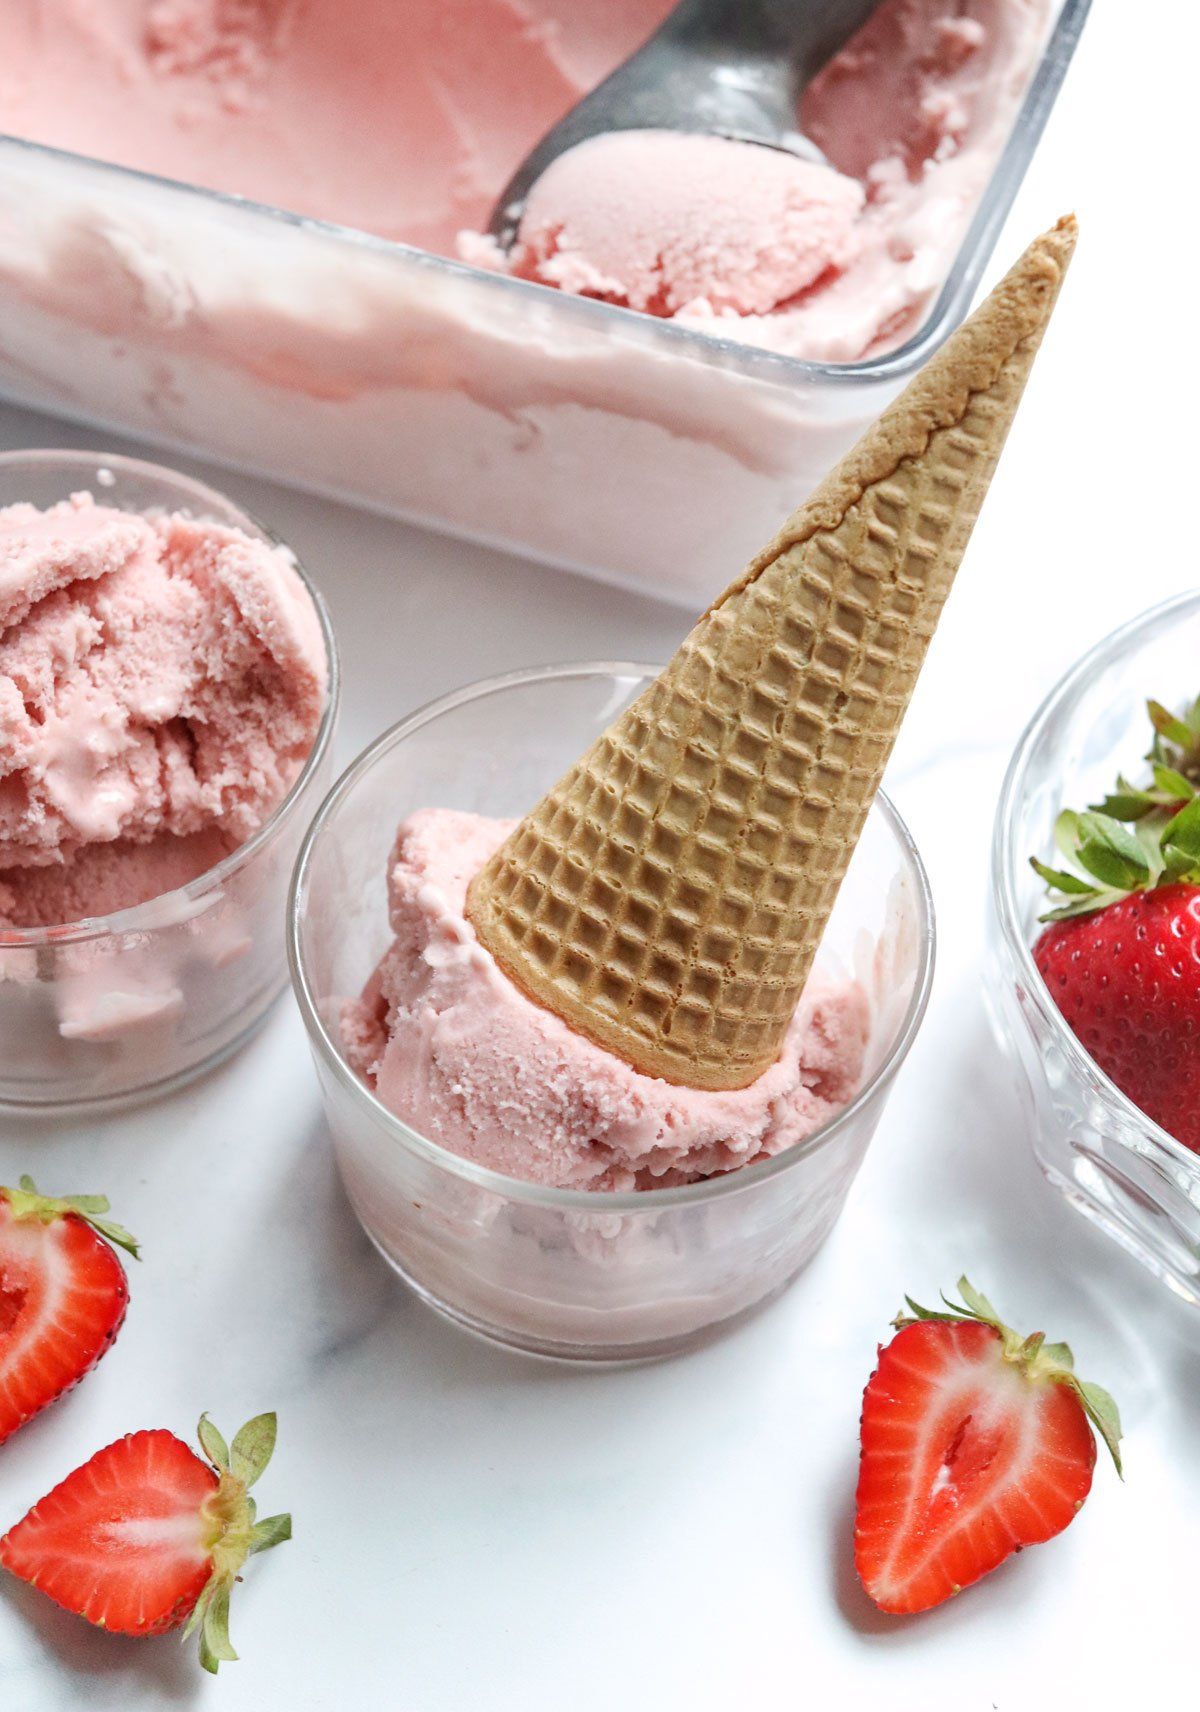 strawberry ice cream with cone and strawberries